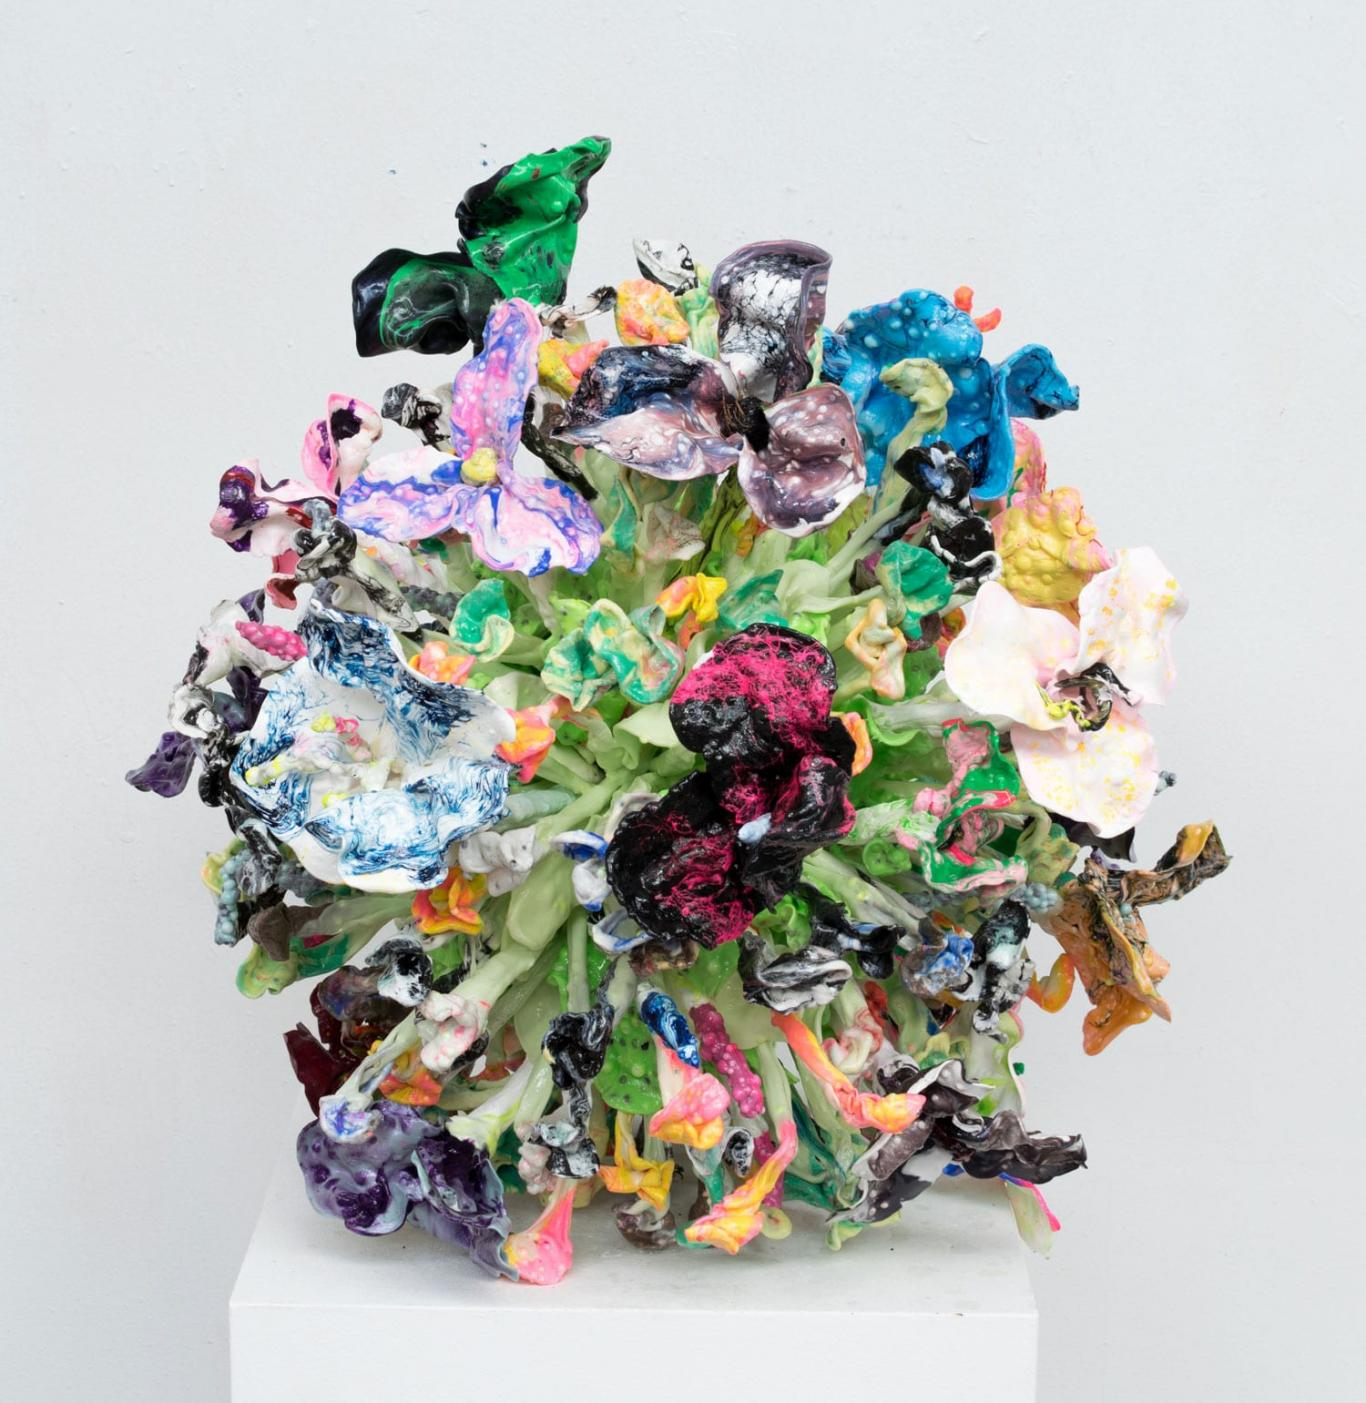 Oil-Plastic-Sculptures-by-Stefan-Gross-Yellowtrace-05